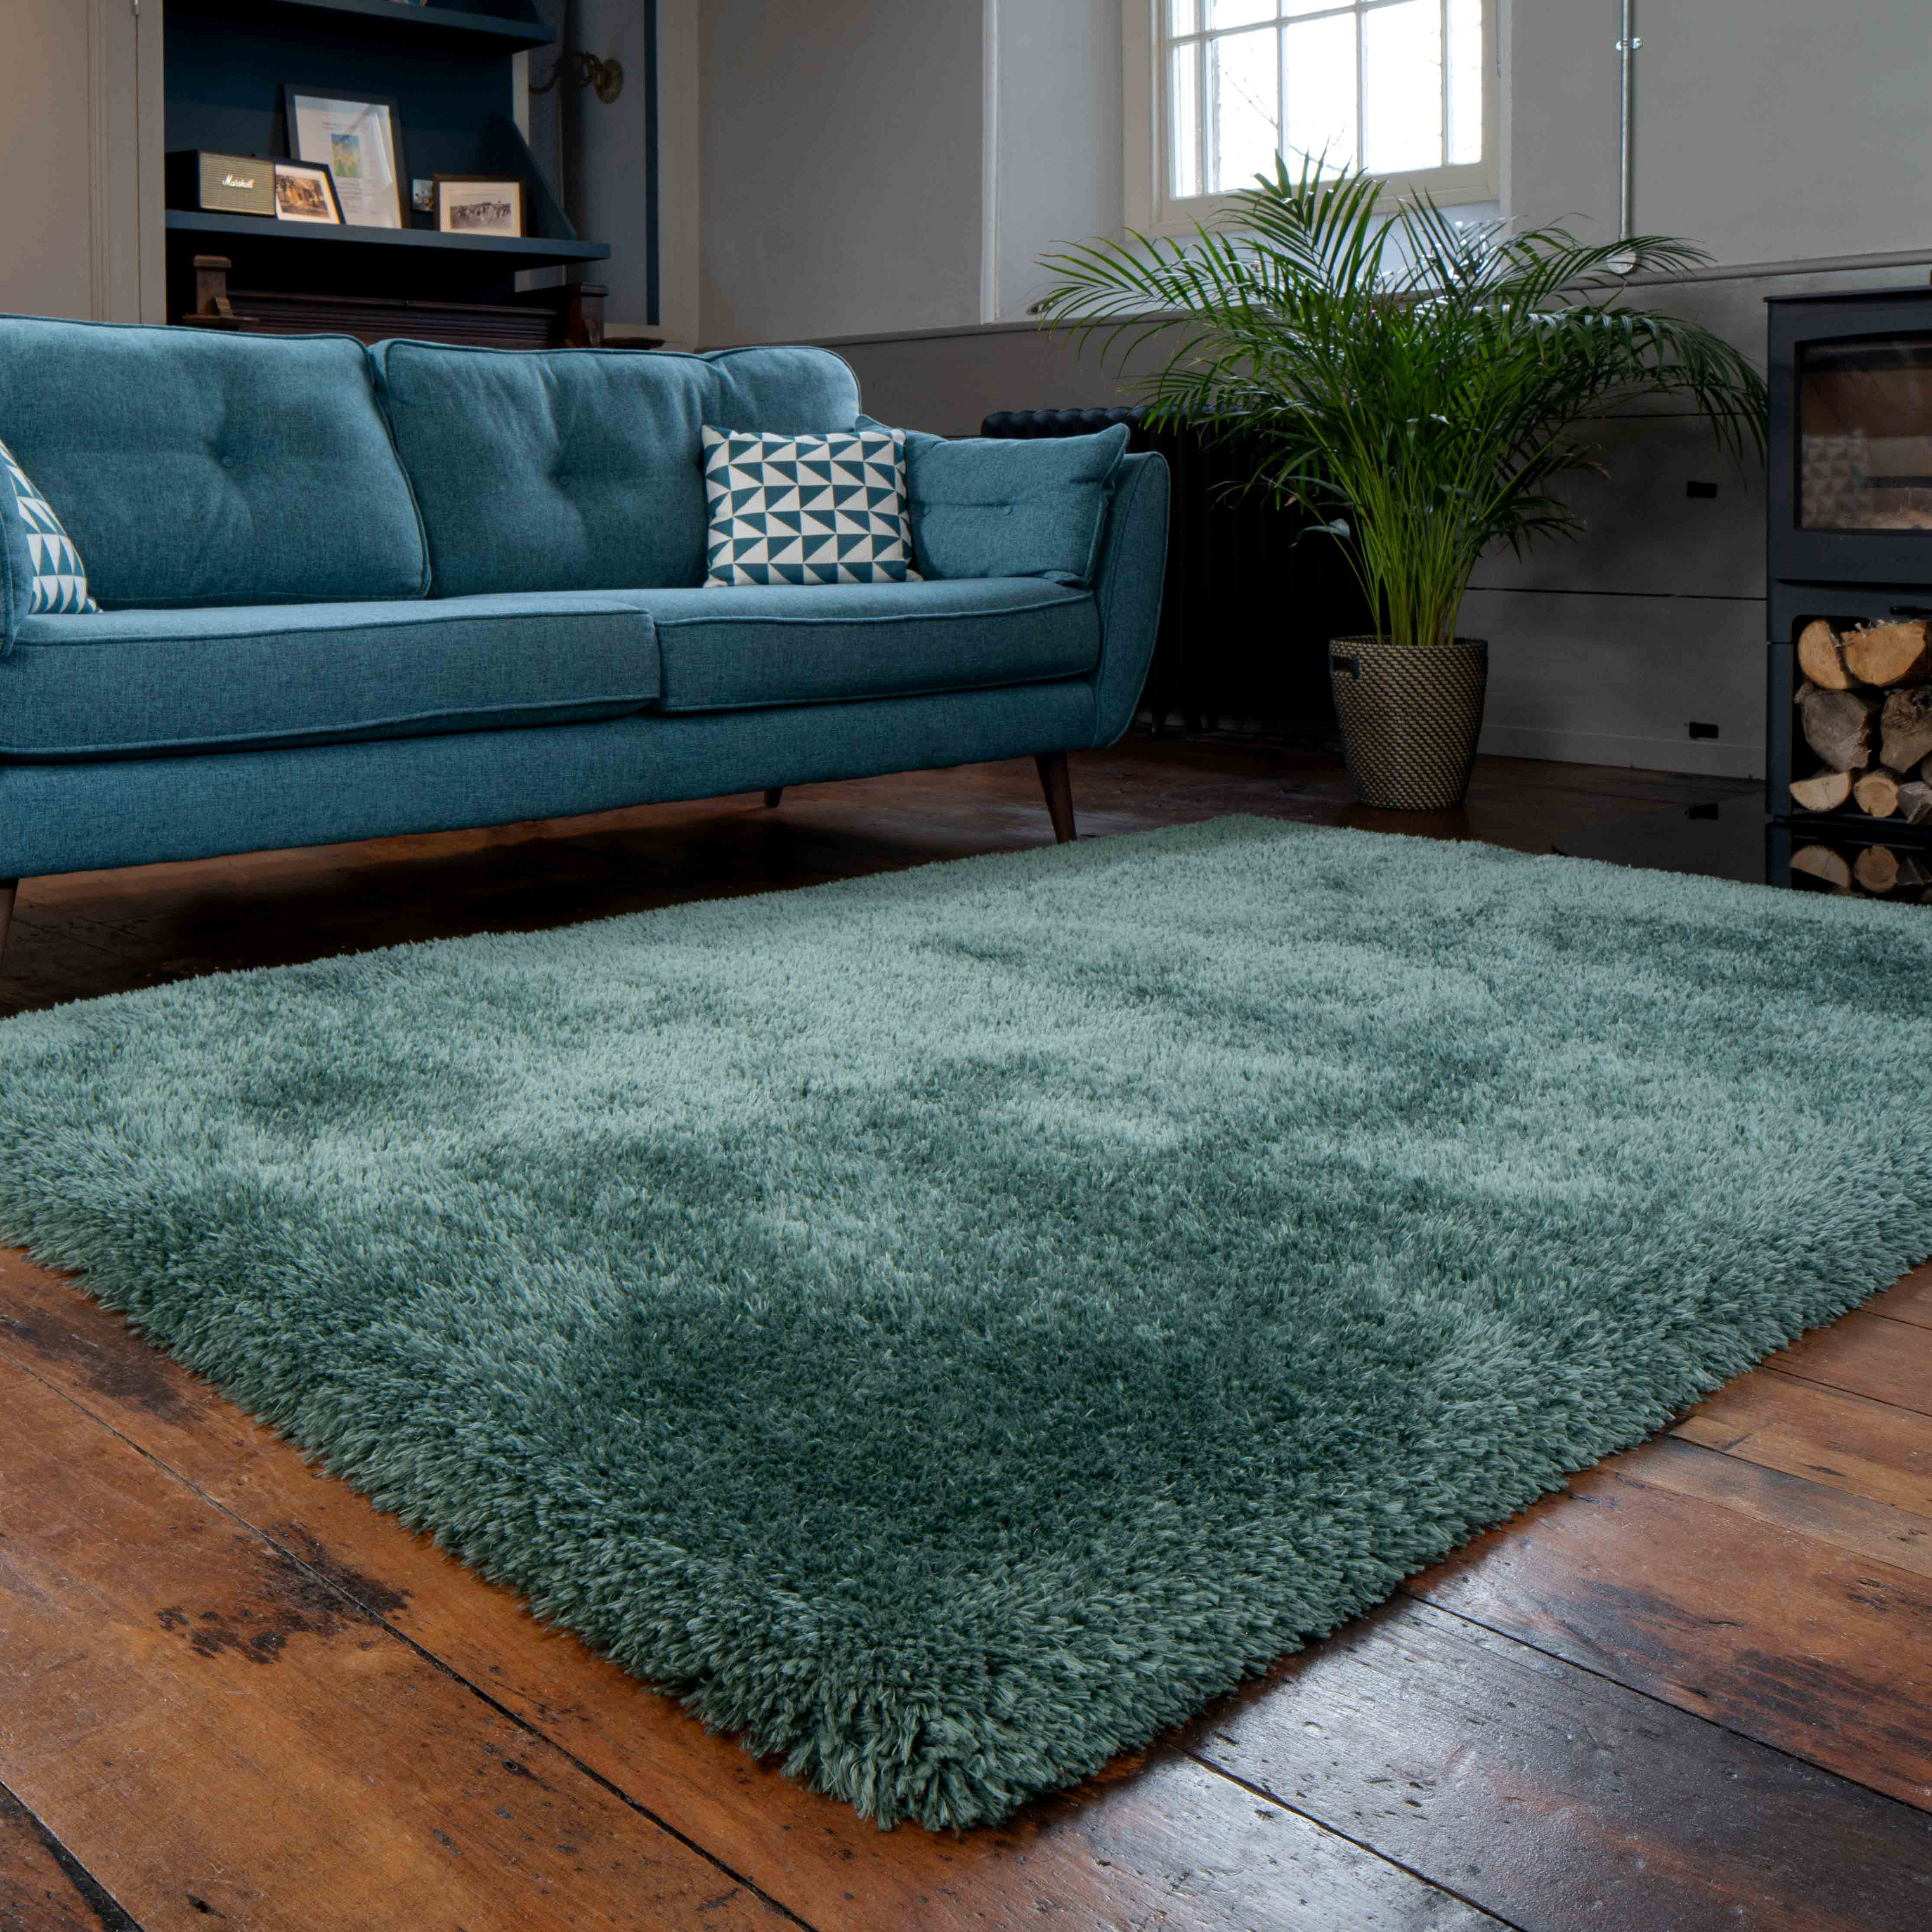 Deluxe Thick Soft Green Shaggy Living Room Rug - Whistler